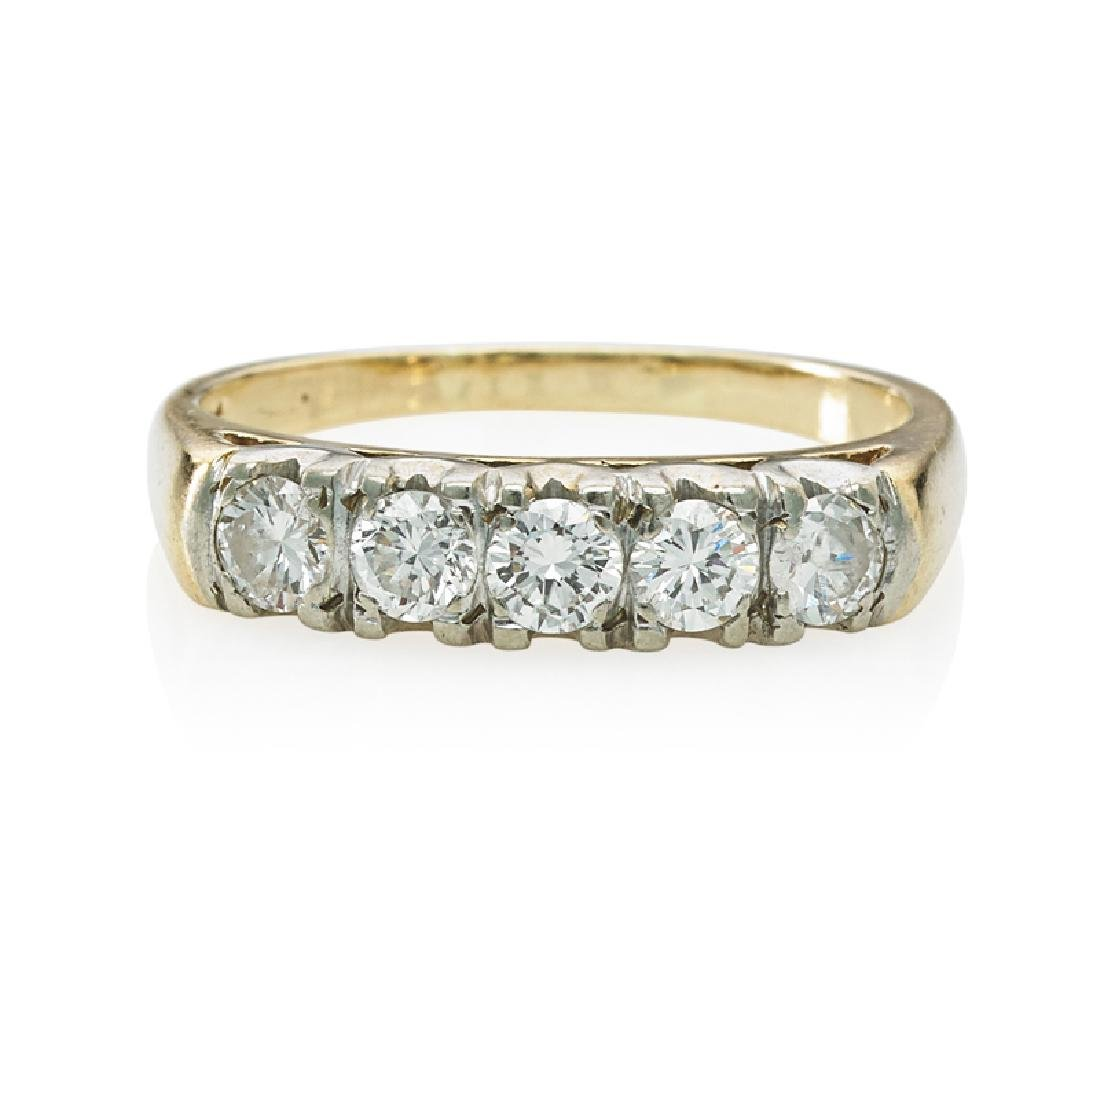 FIVE STONE DIAMOND & YELLOW GOLD RING